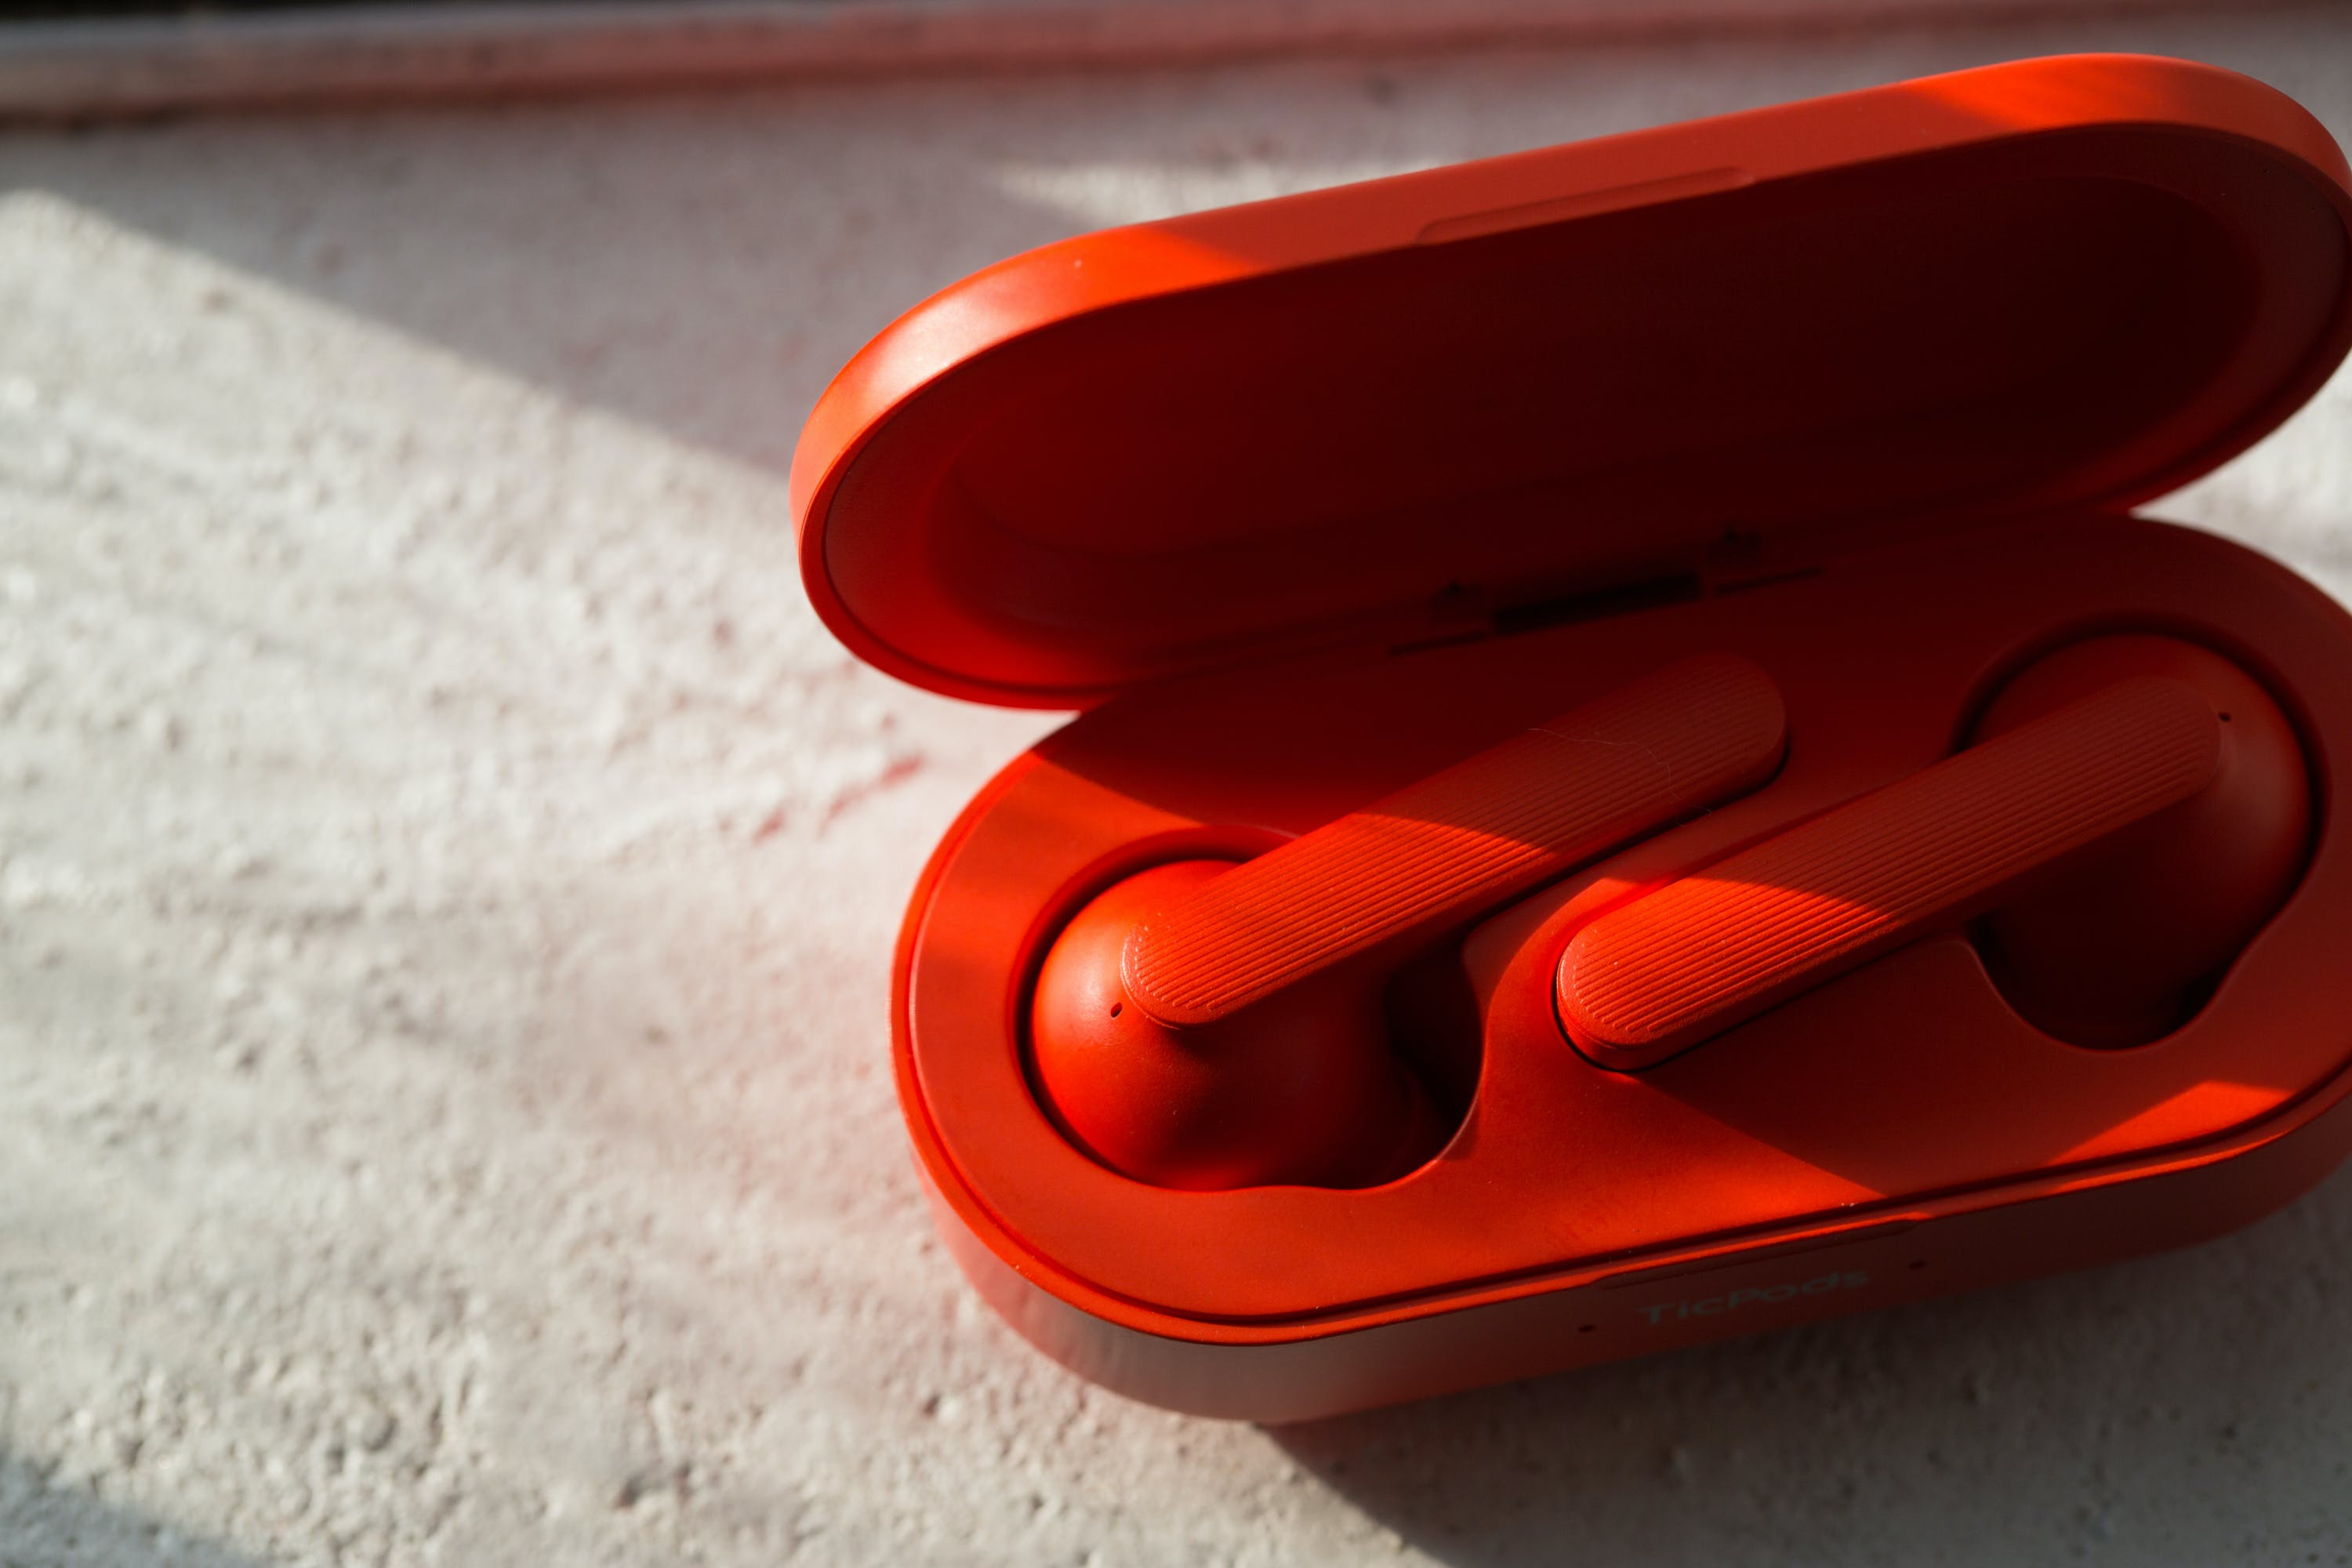 Copy of red ticpods with case.jpg?ixlib=rails 2.1